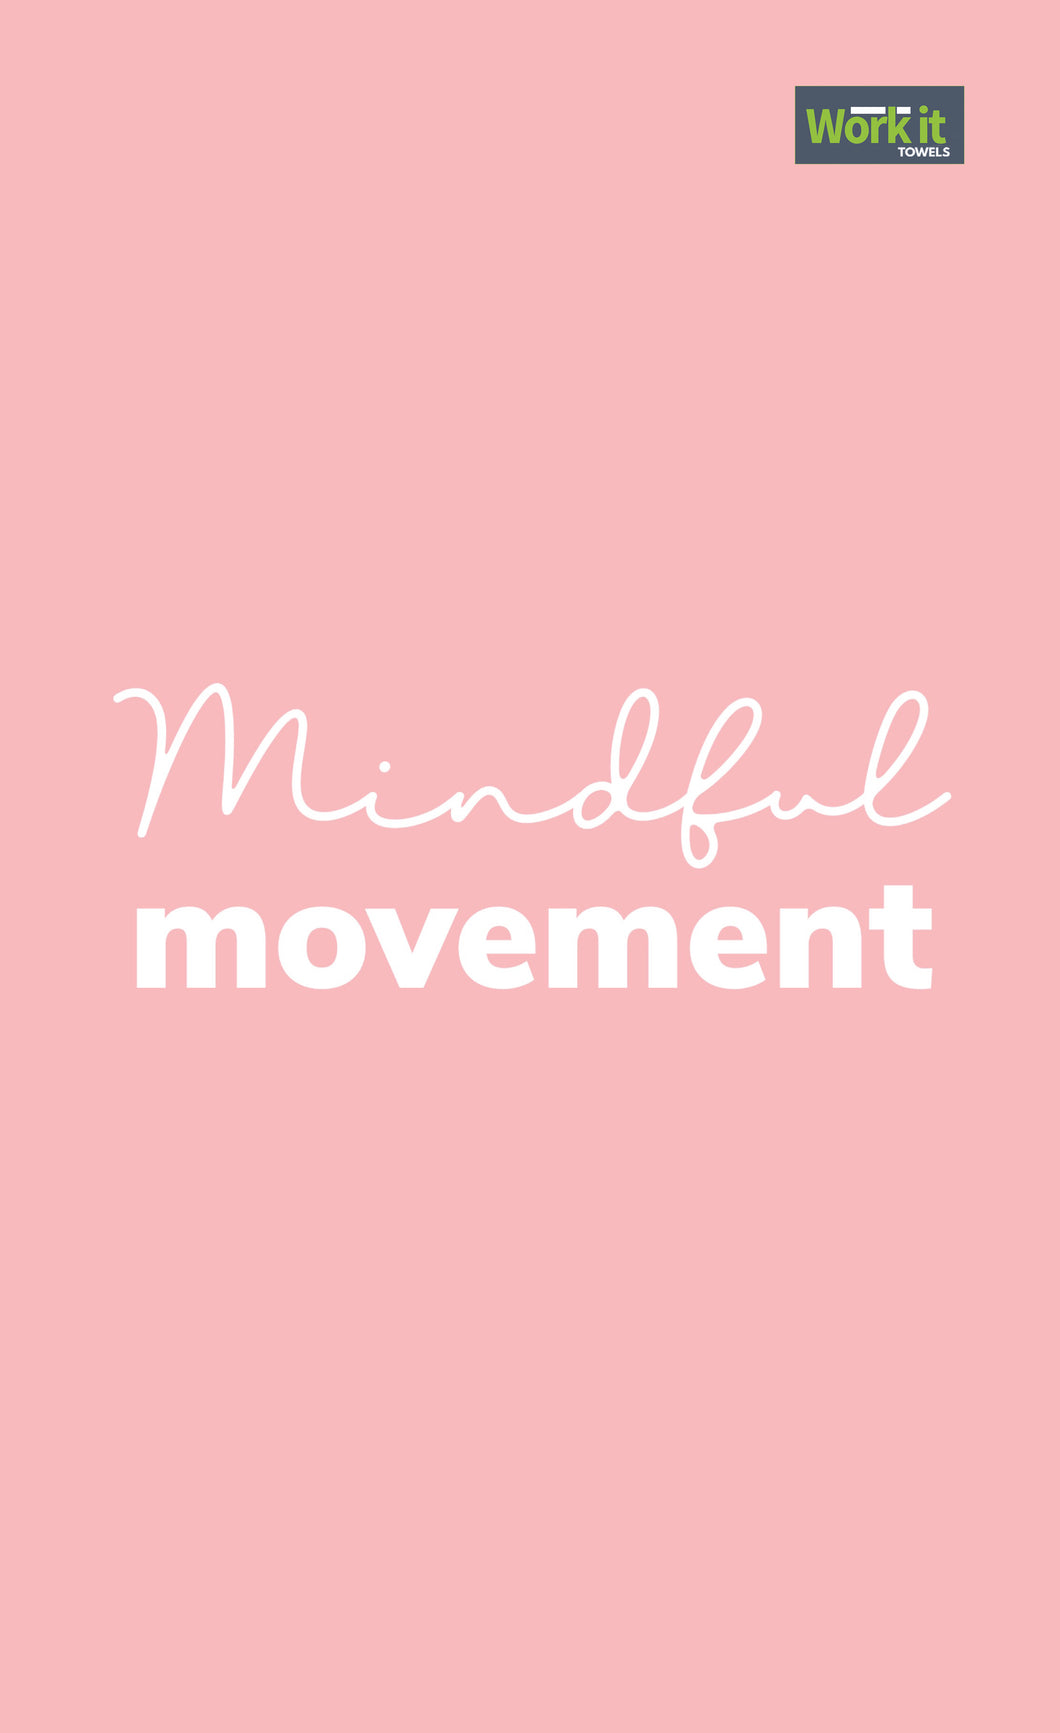 Mindful Movement - work it towels